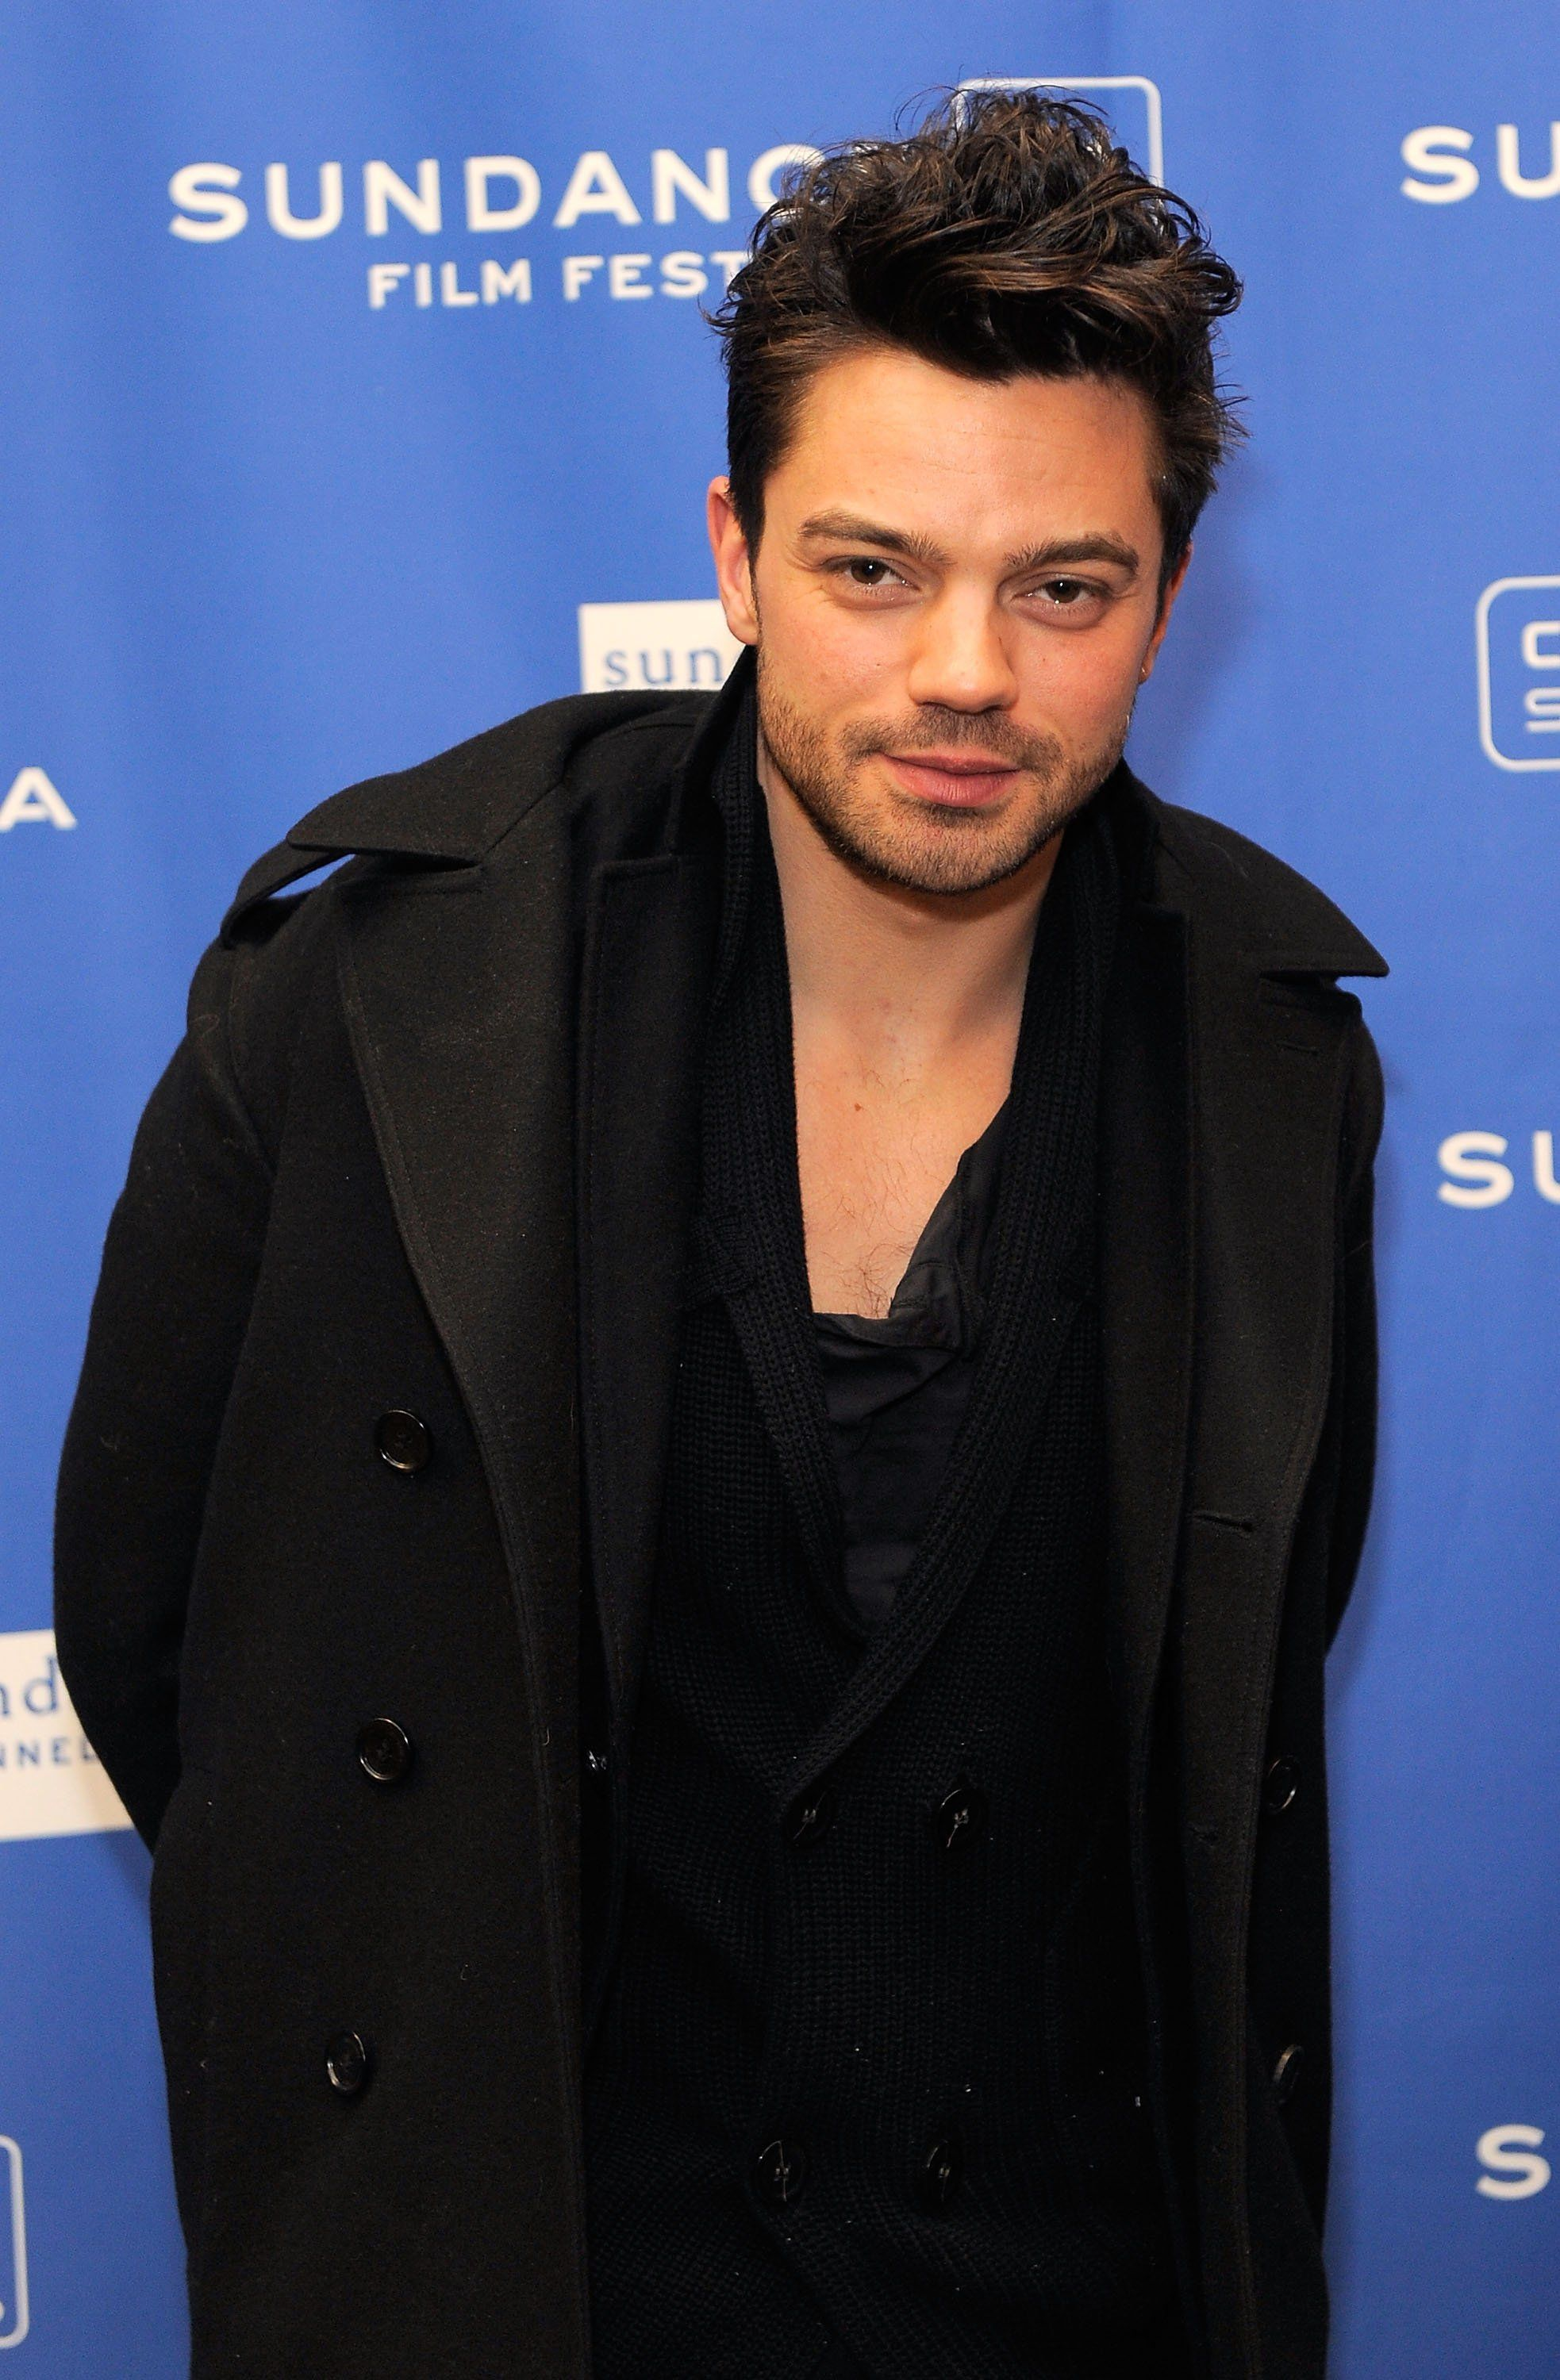 26 Photos Of Dominic Cooper That Will Make Your Soul Shiver If